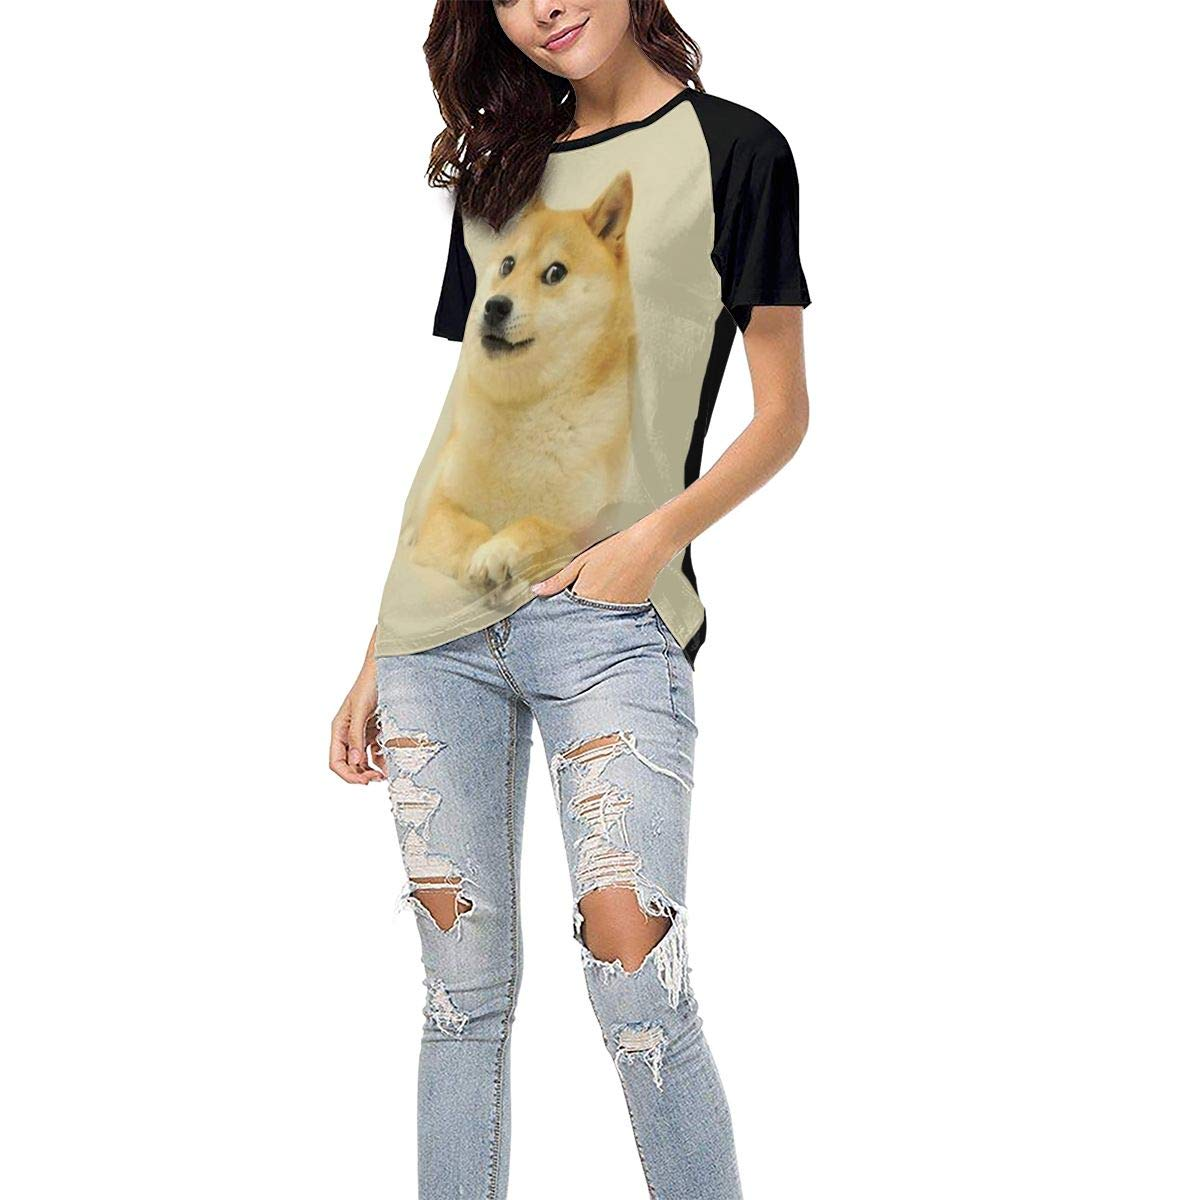 Haughty Doge Casual Raglan Tee Baseball Tshirts Tops Blouse Laki-co Womens Summer Short Sleeve